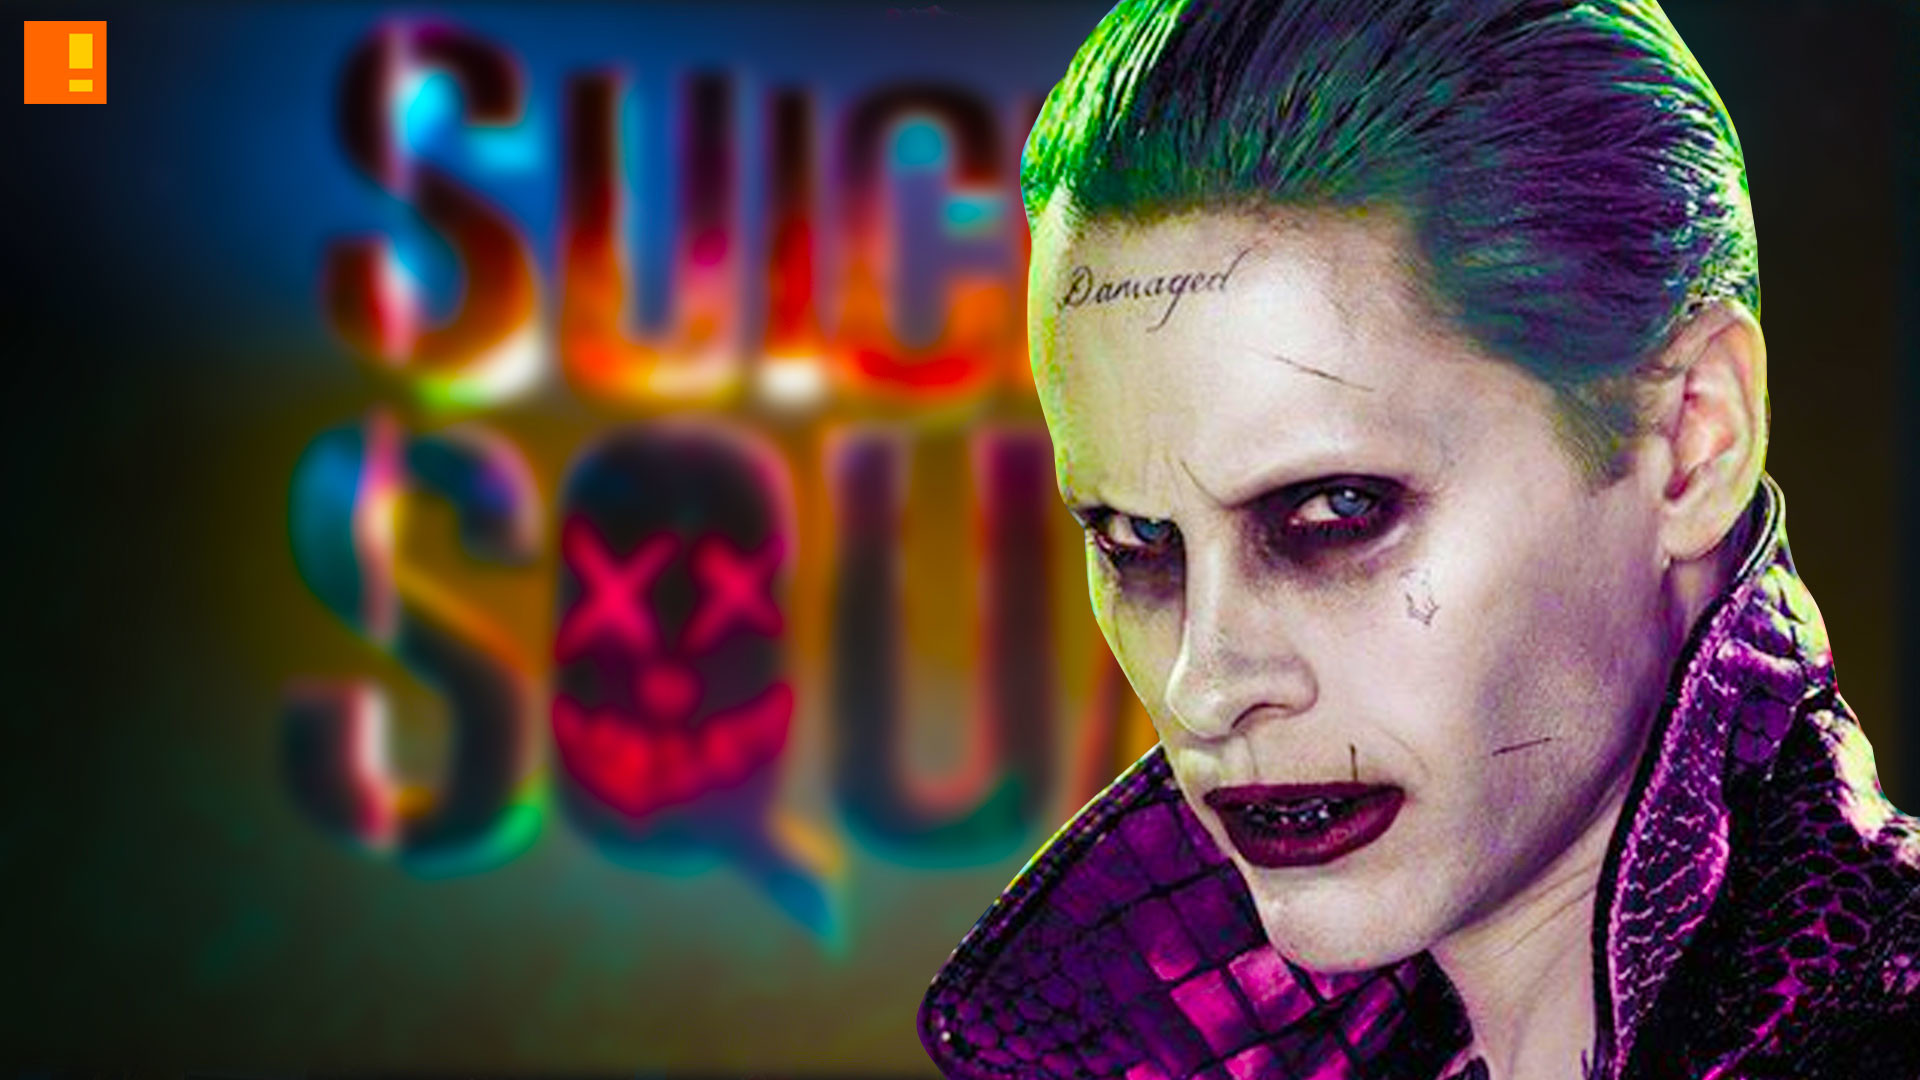 1920x1080 suicide squad, joker, banner, poster, entertainment on tap, the action pixel